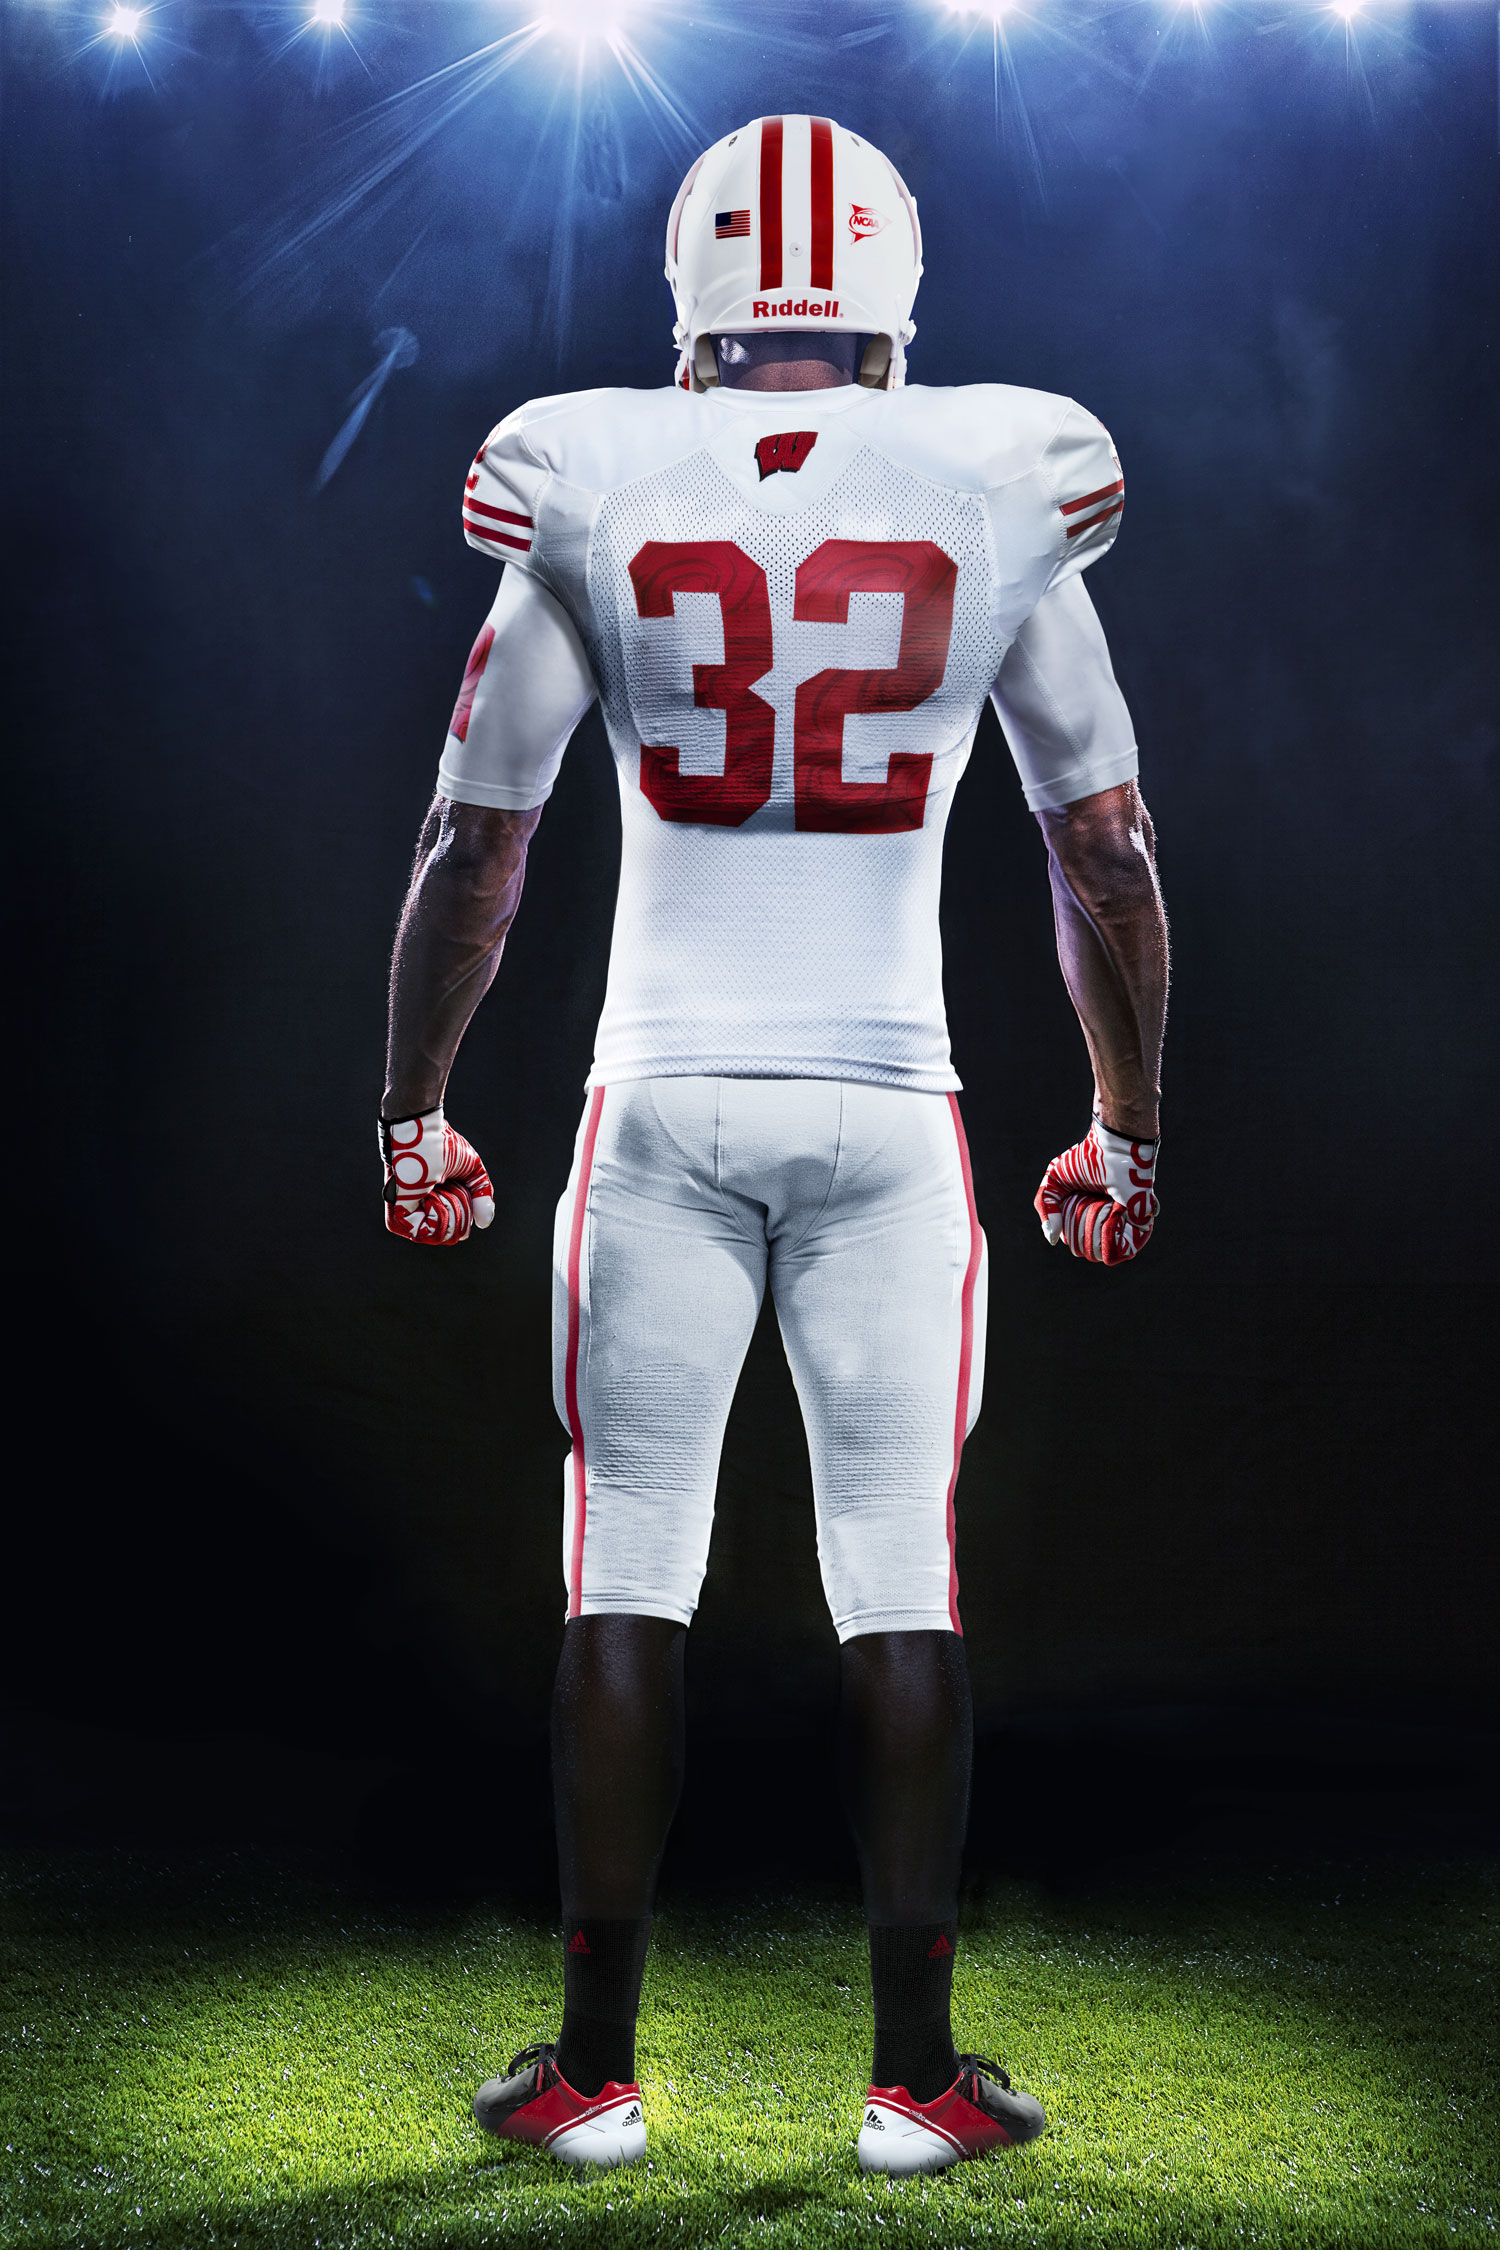 Wisconsin Badgers Football Uniforms